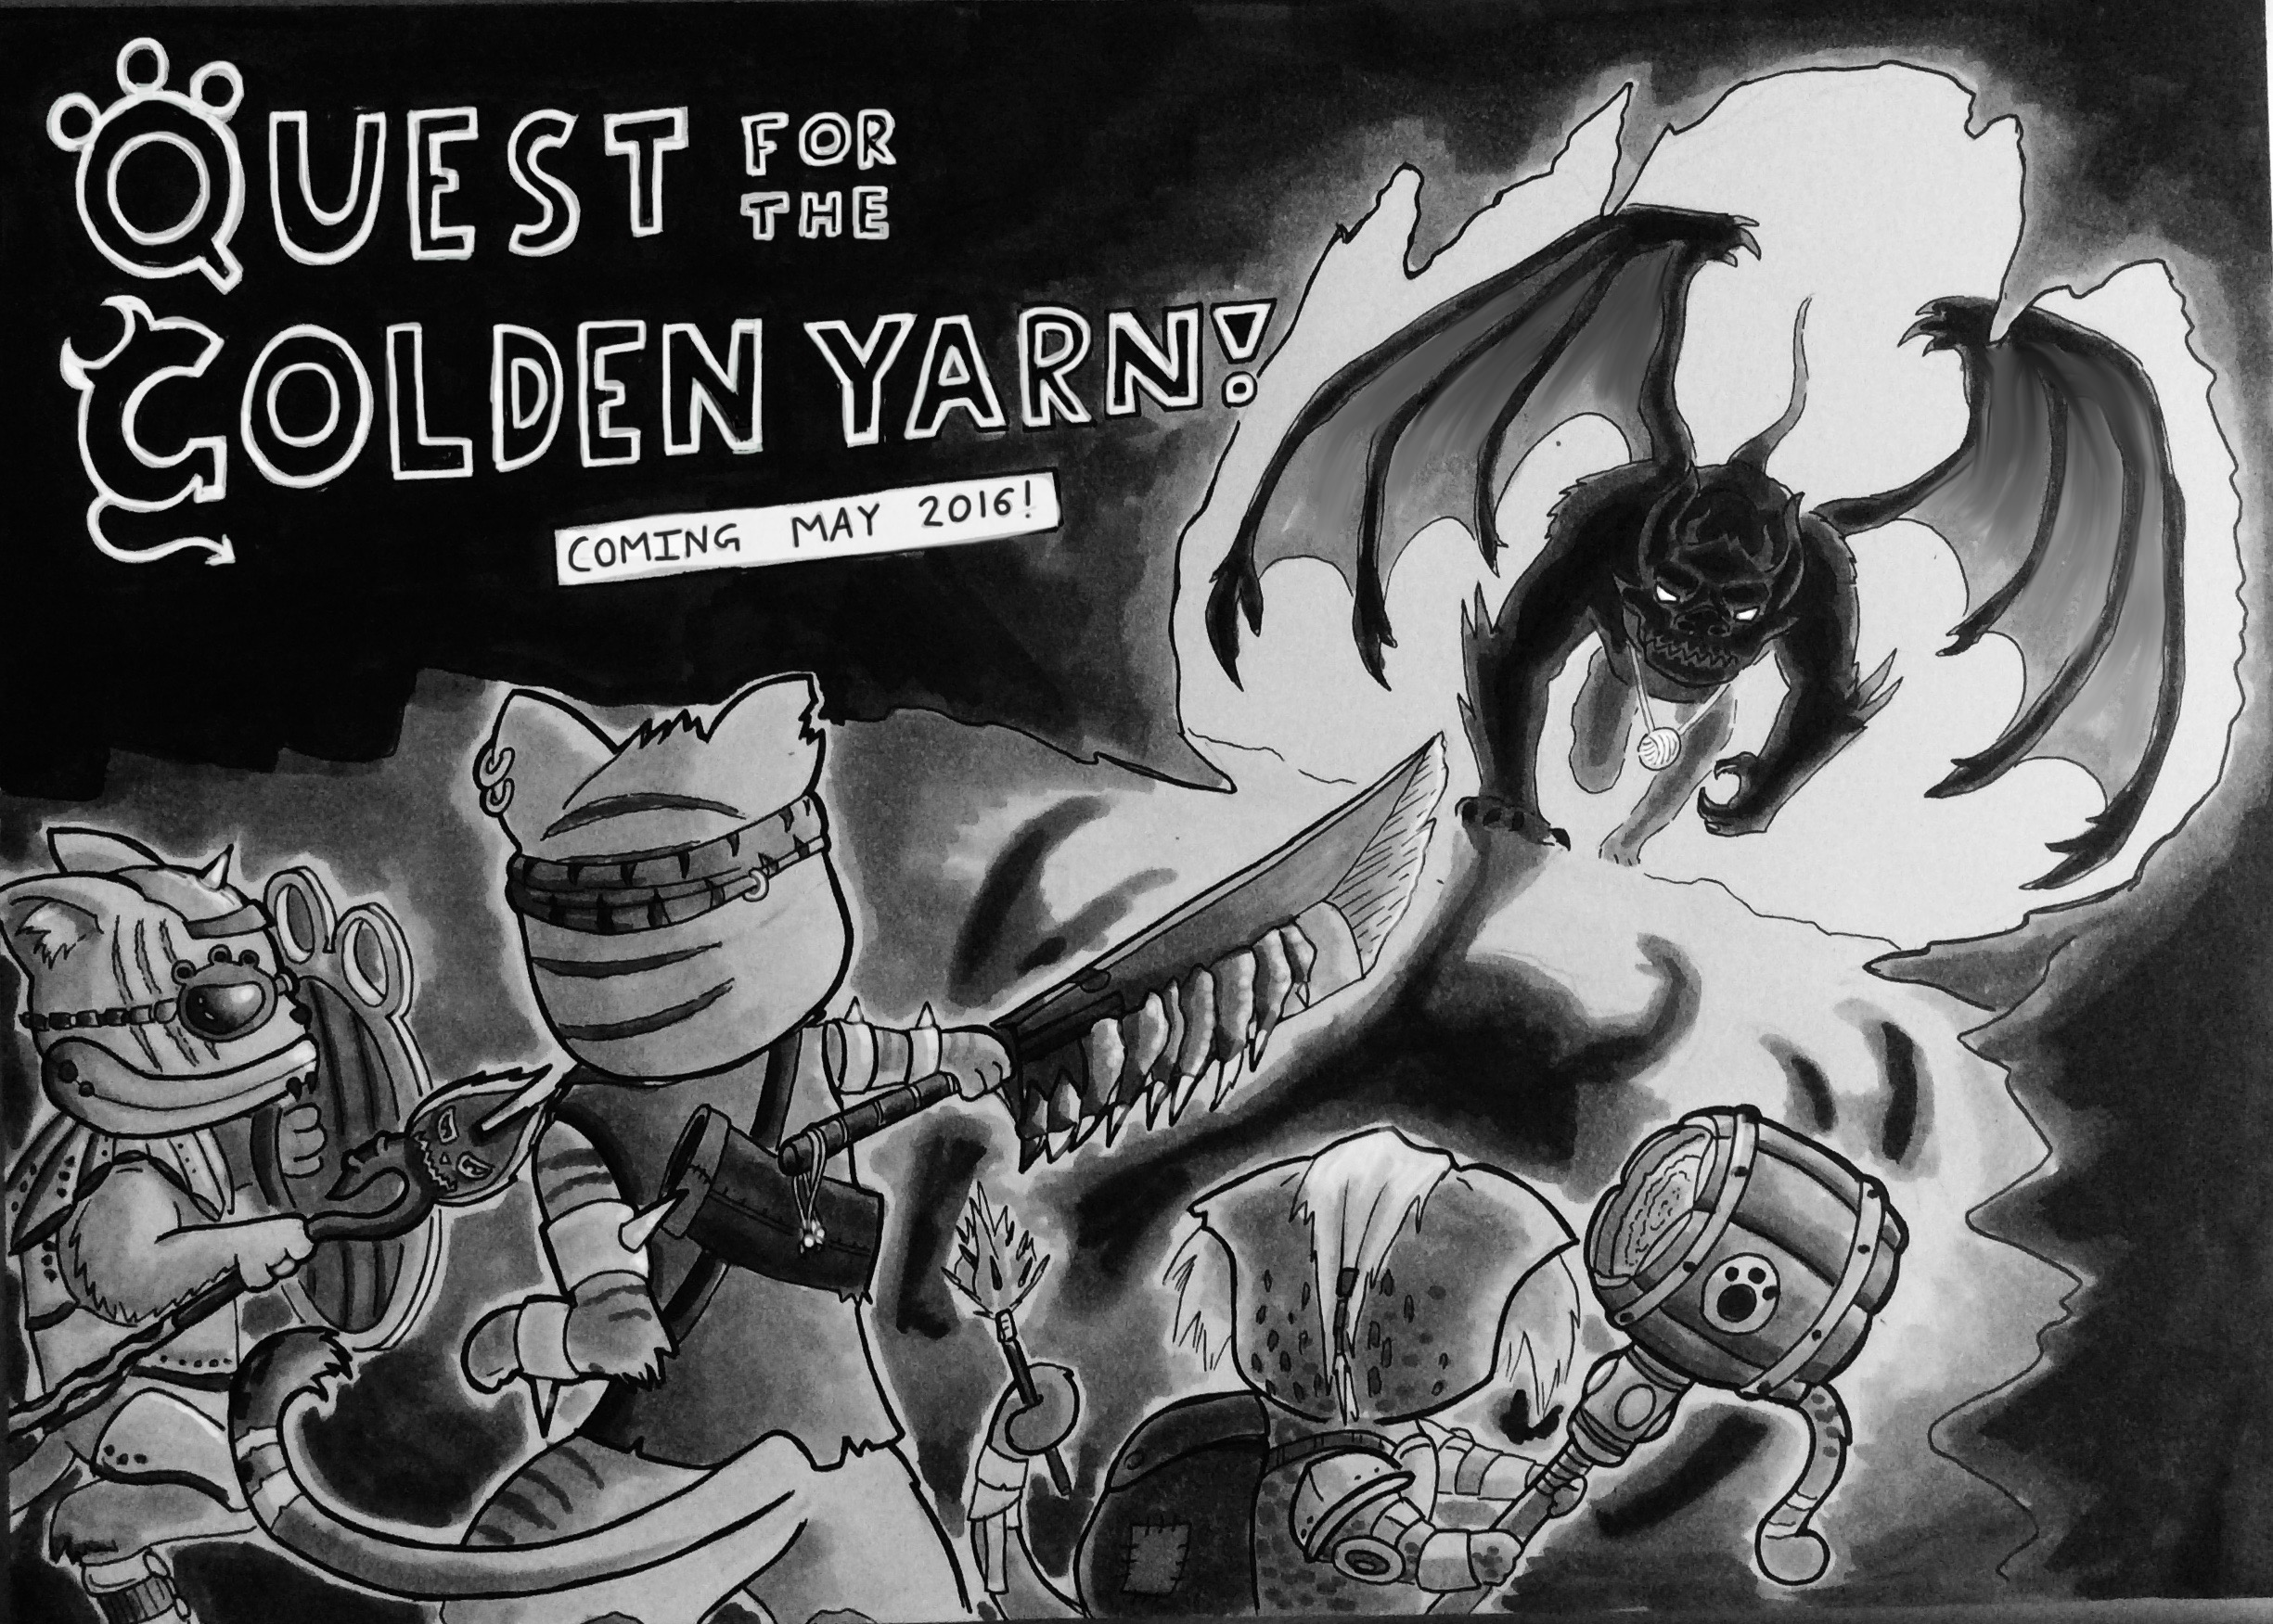 Quest for the Golden Yarn! COTM